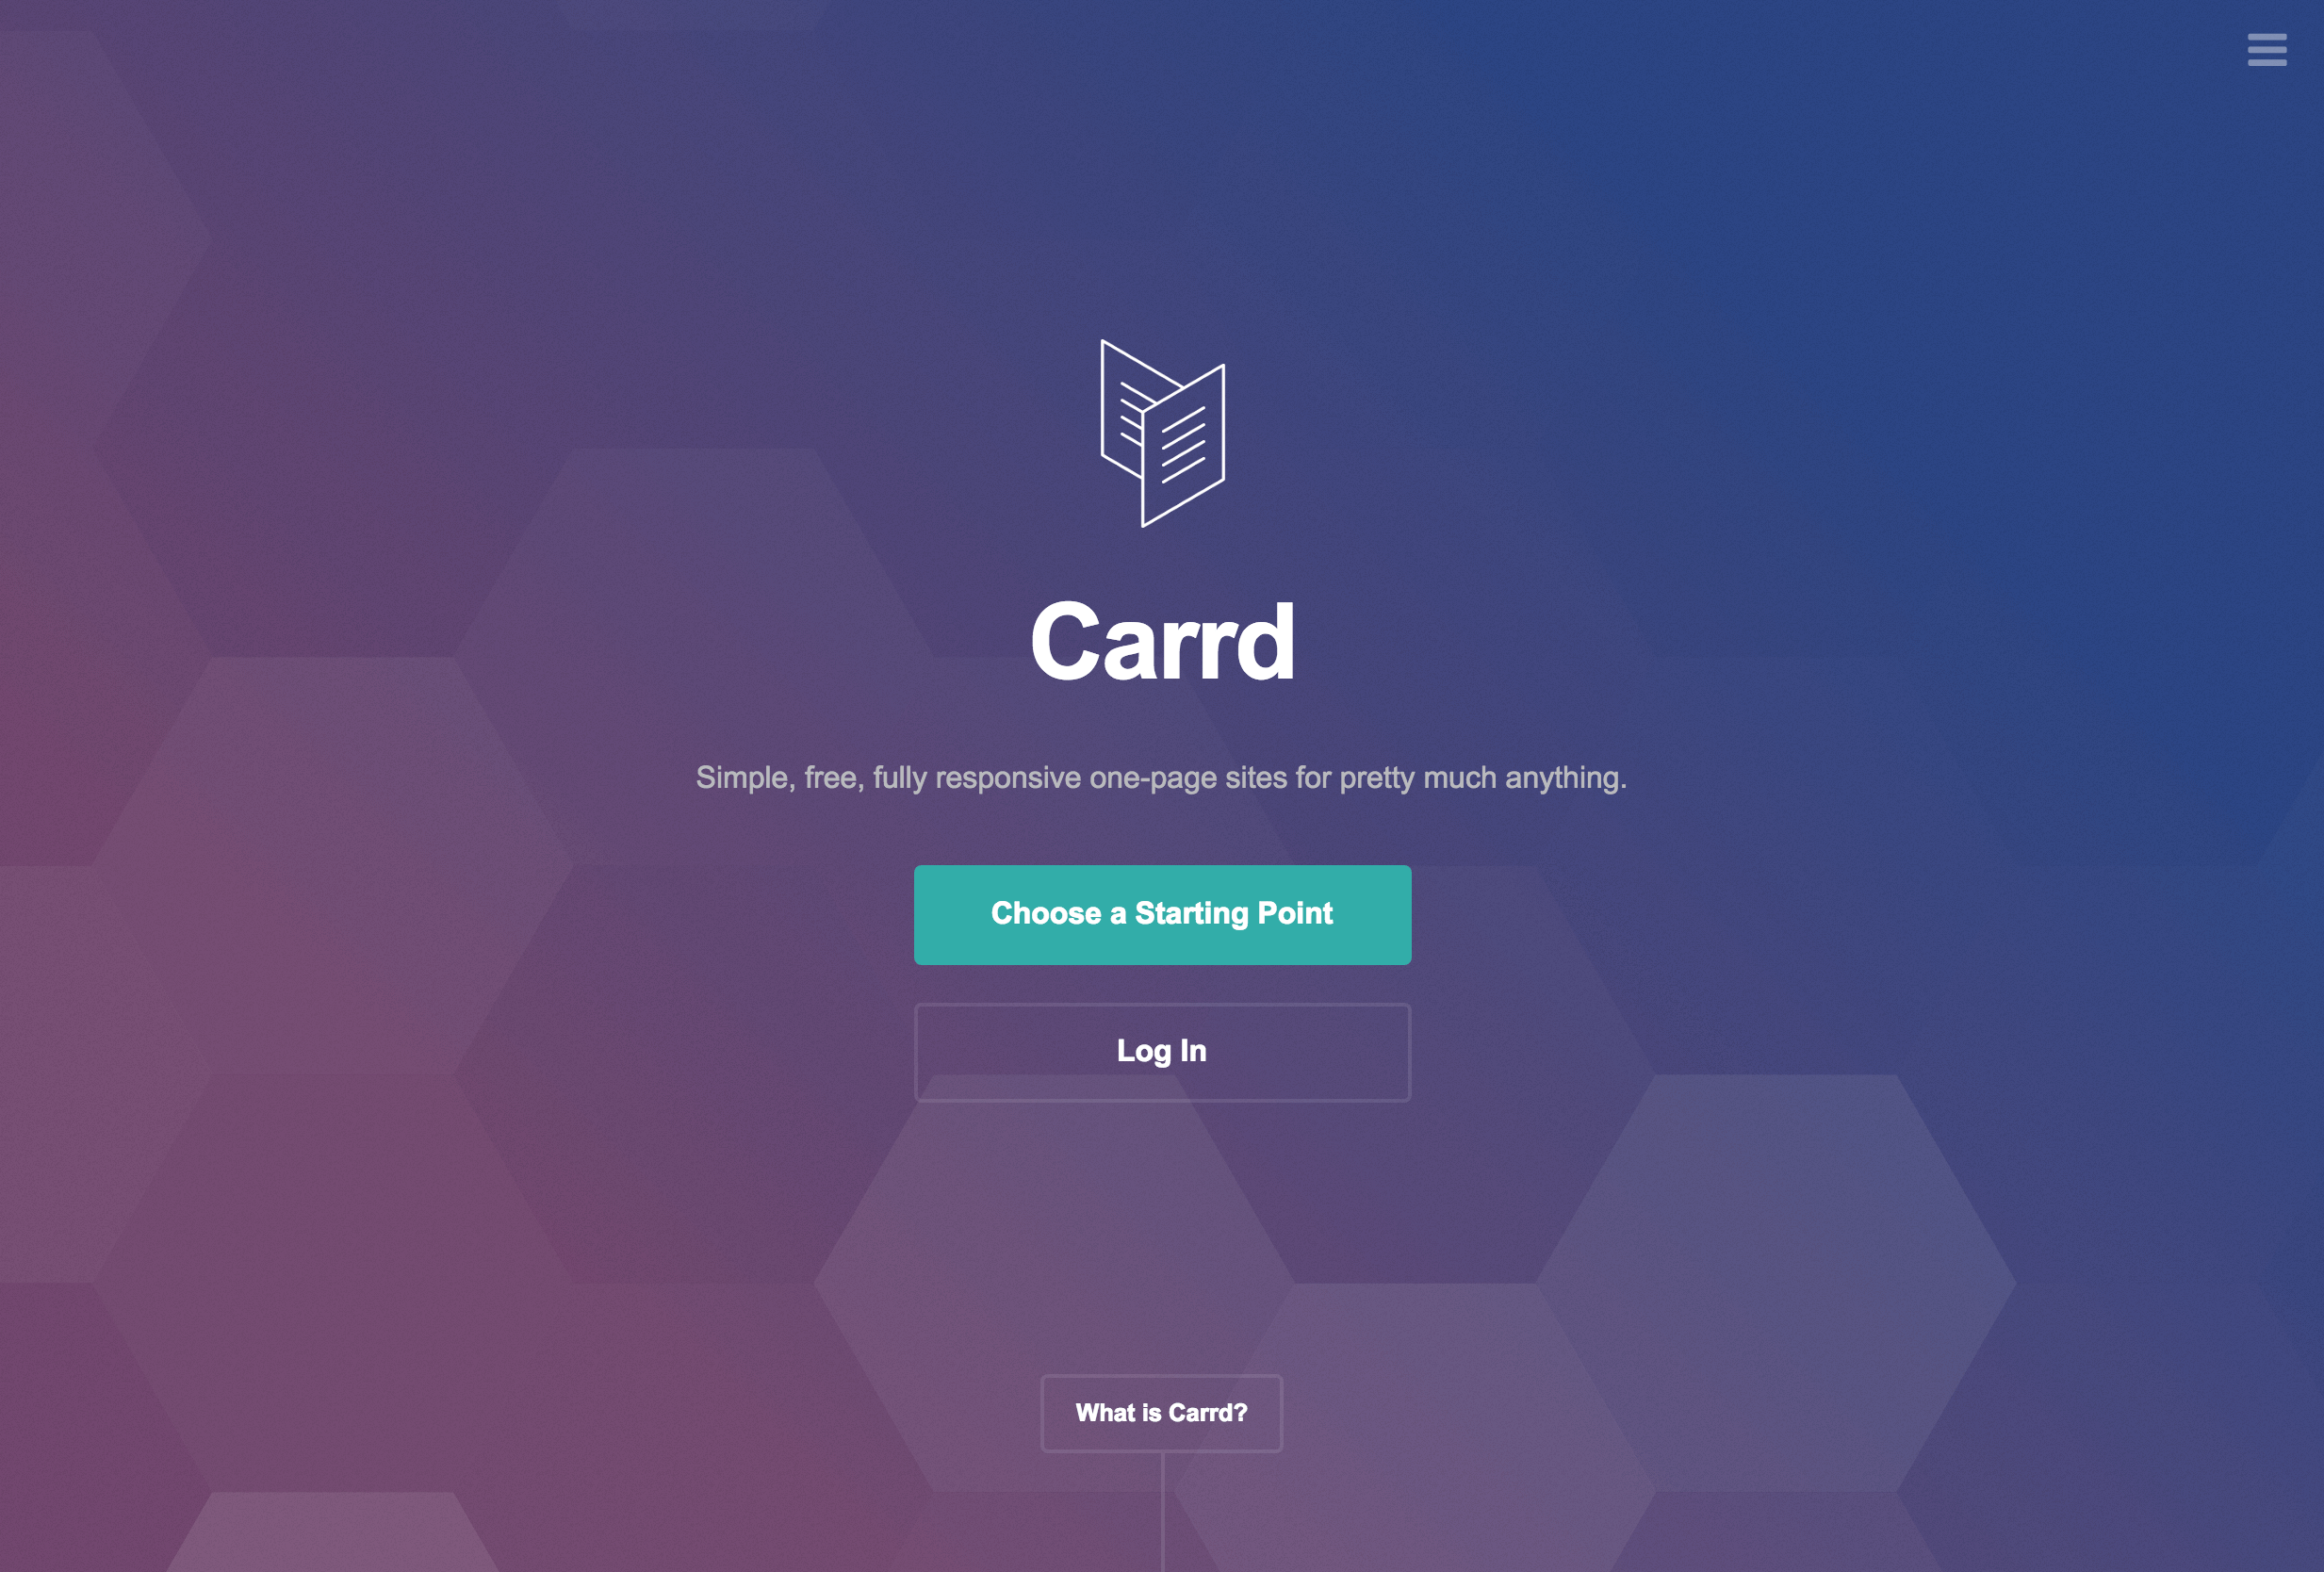 Example of a gradient effect in Carrd's design